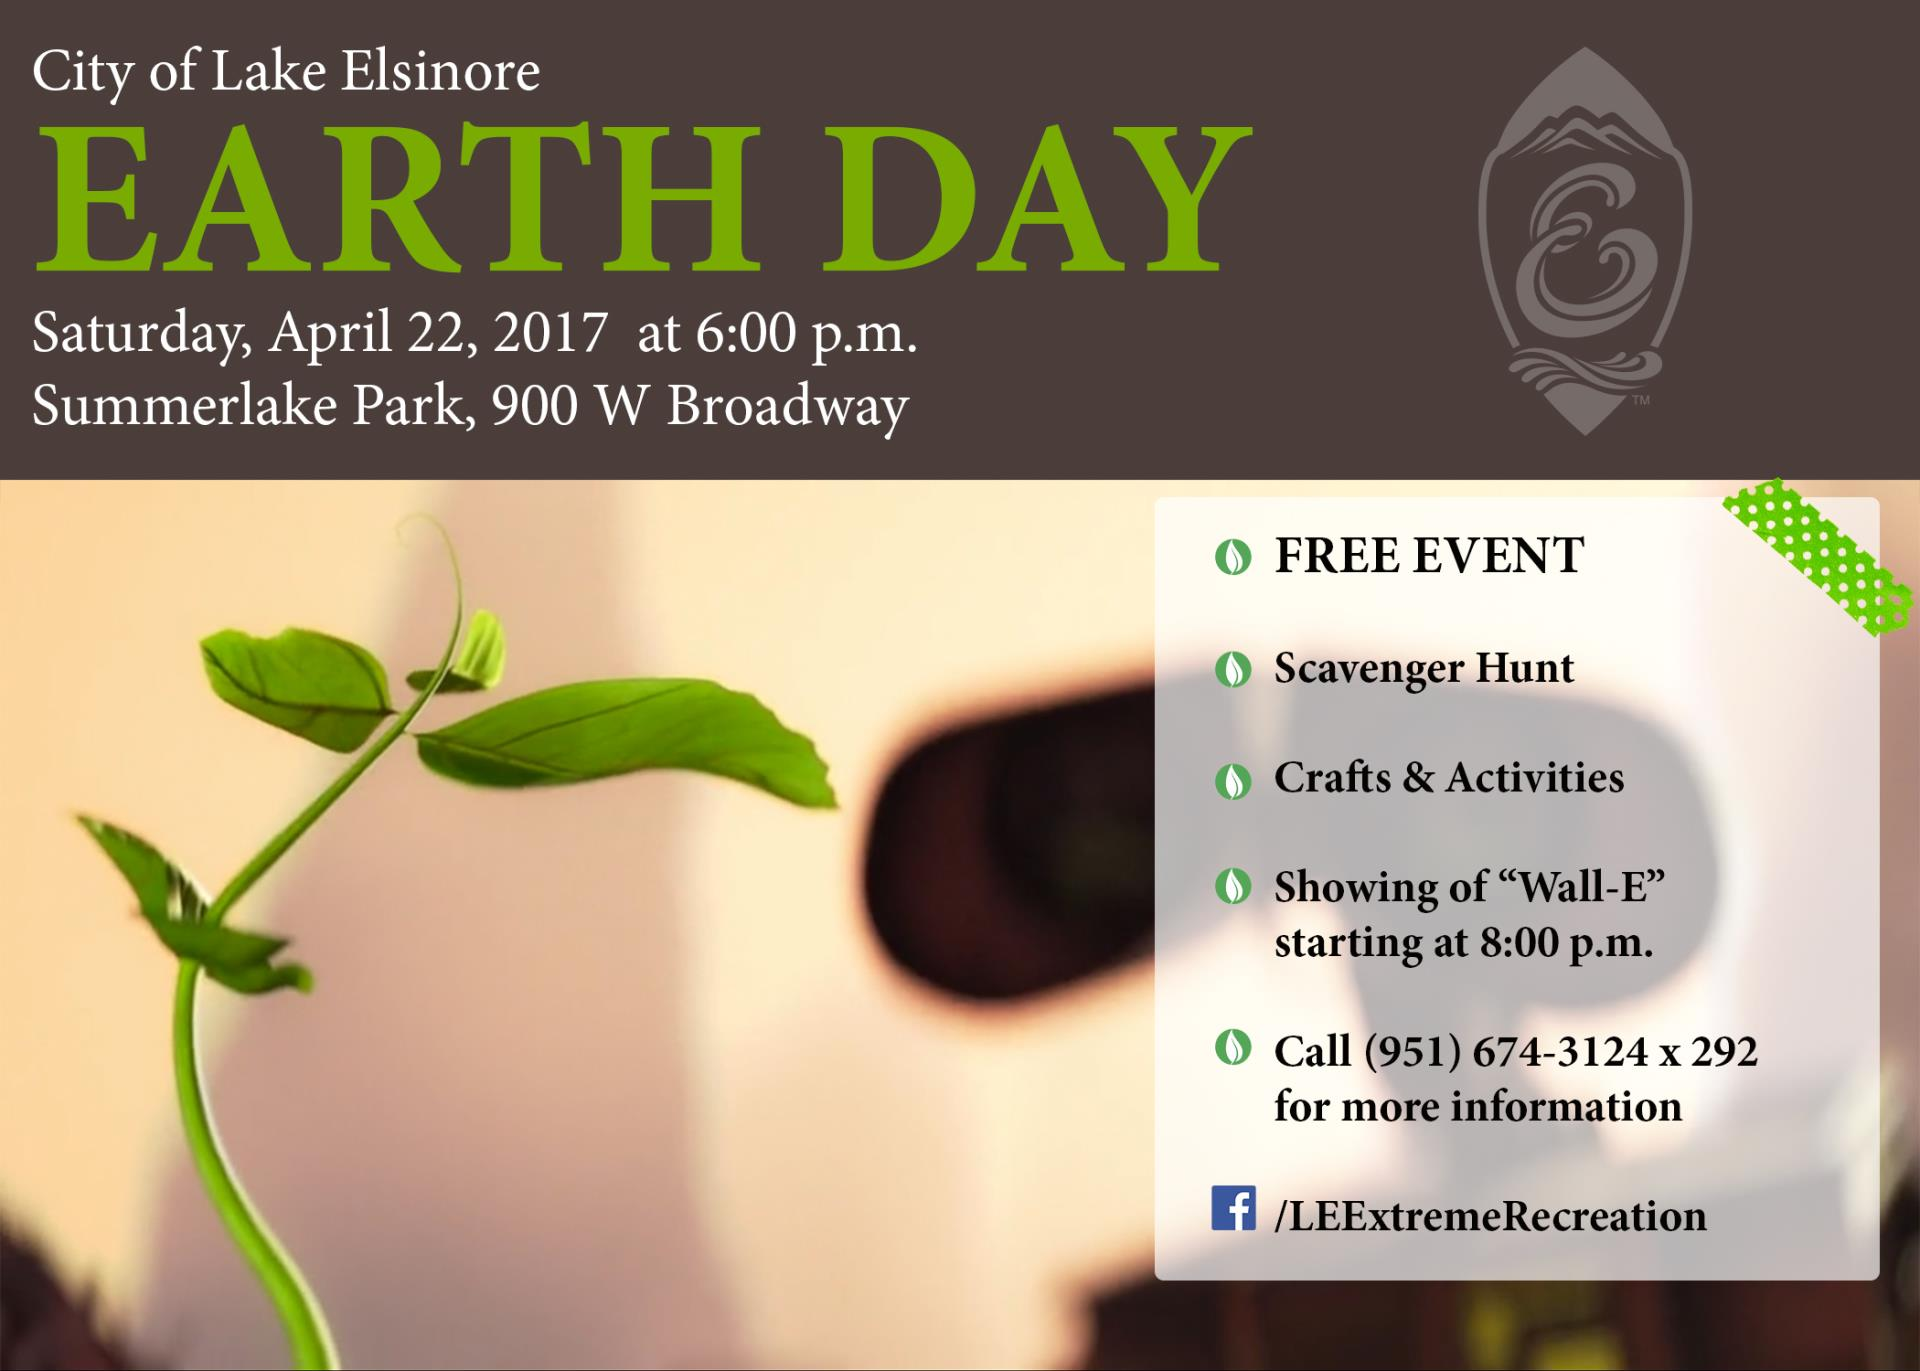 170228 - Earth Day Flyer